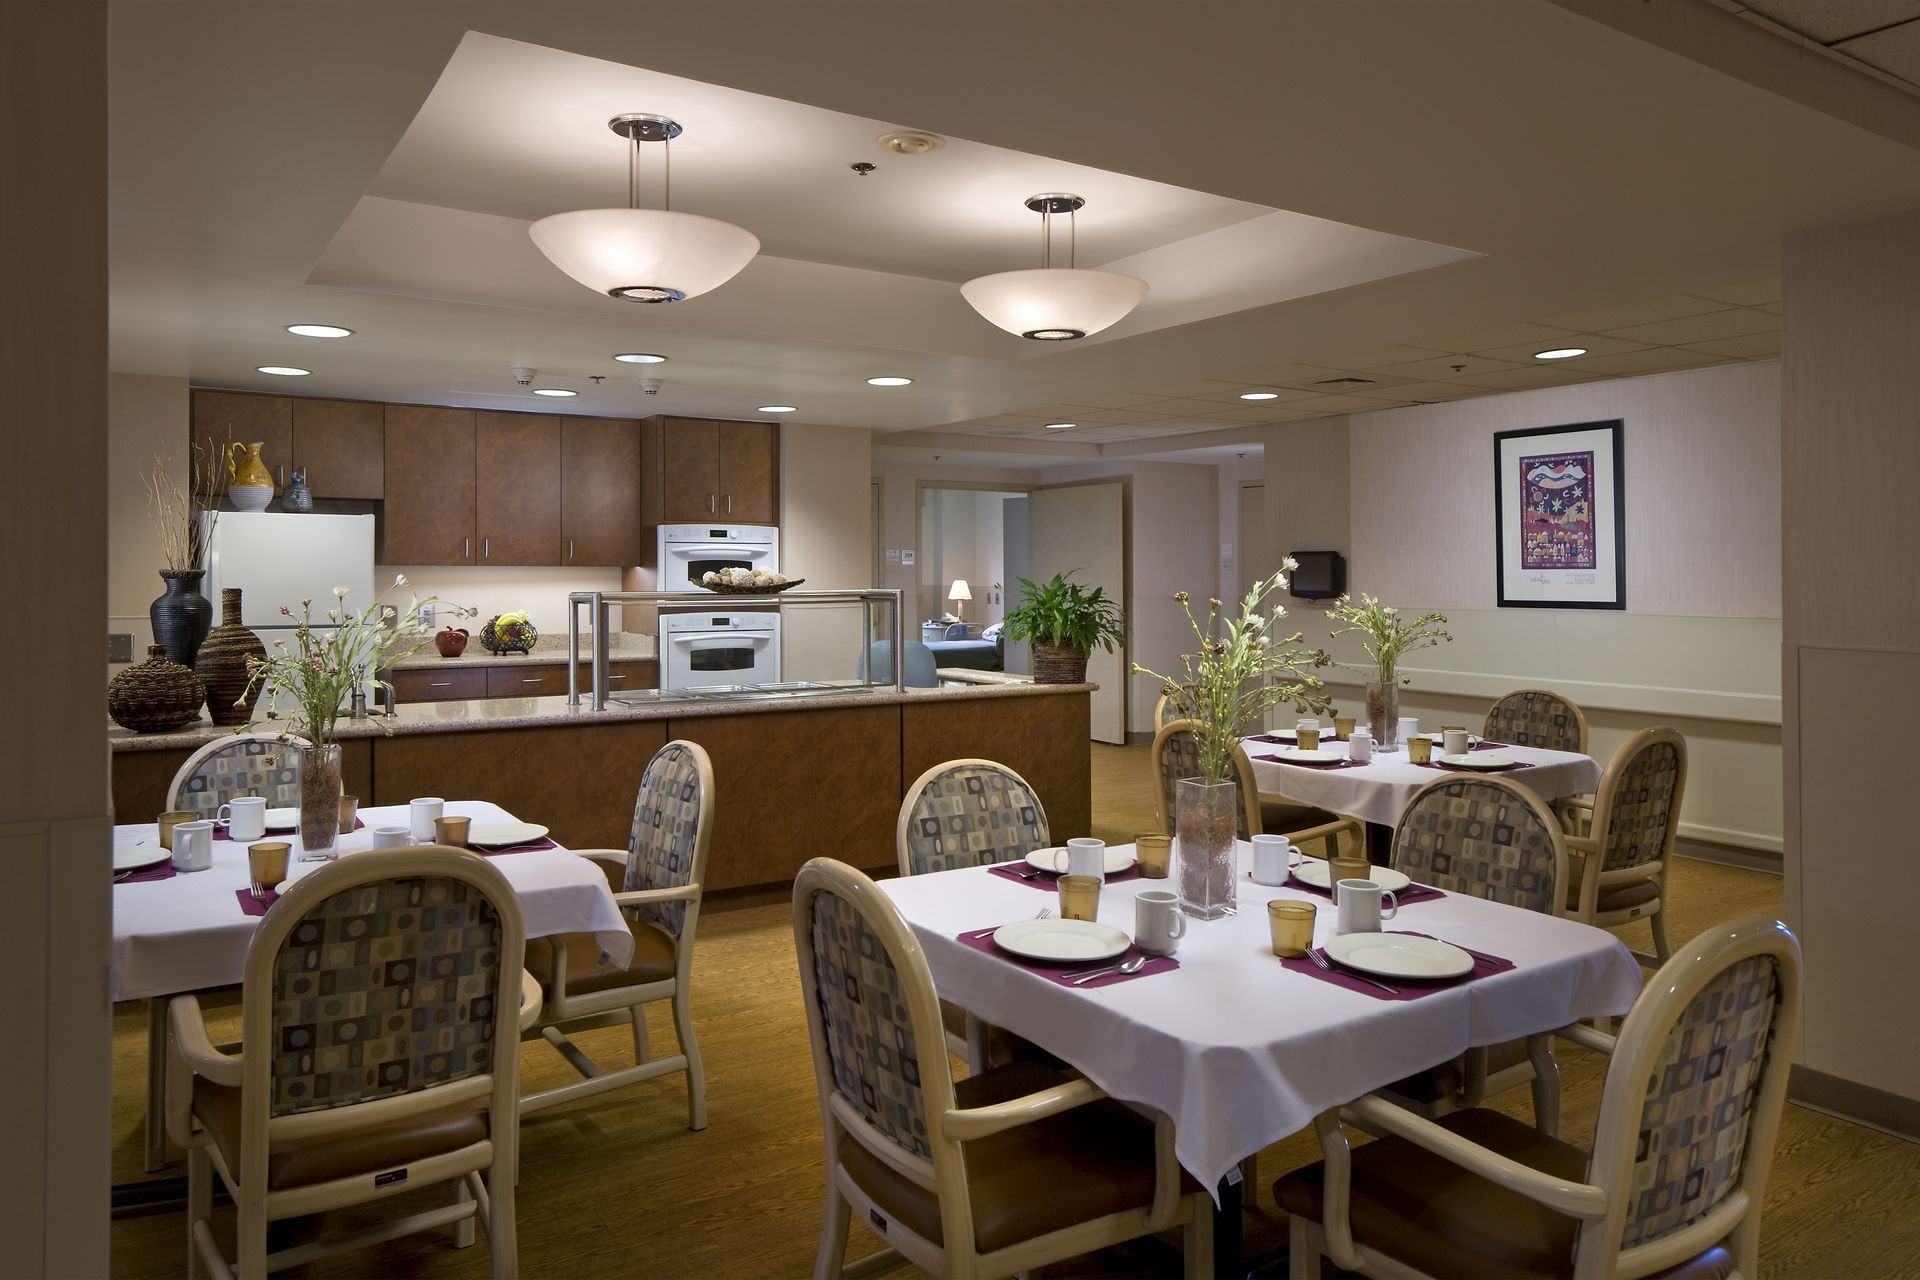 Breman Jewish Home Skilled Nursing Caual Dining THW Design Healthcare